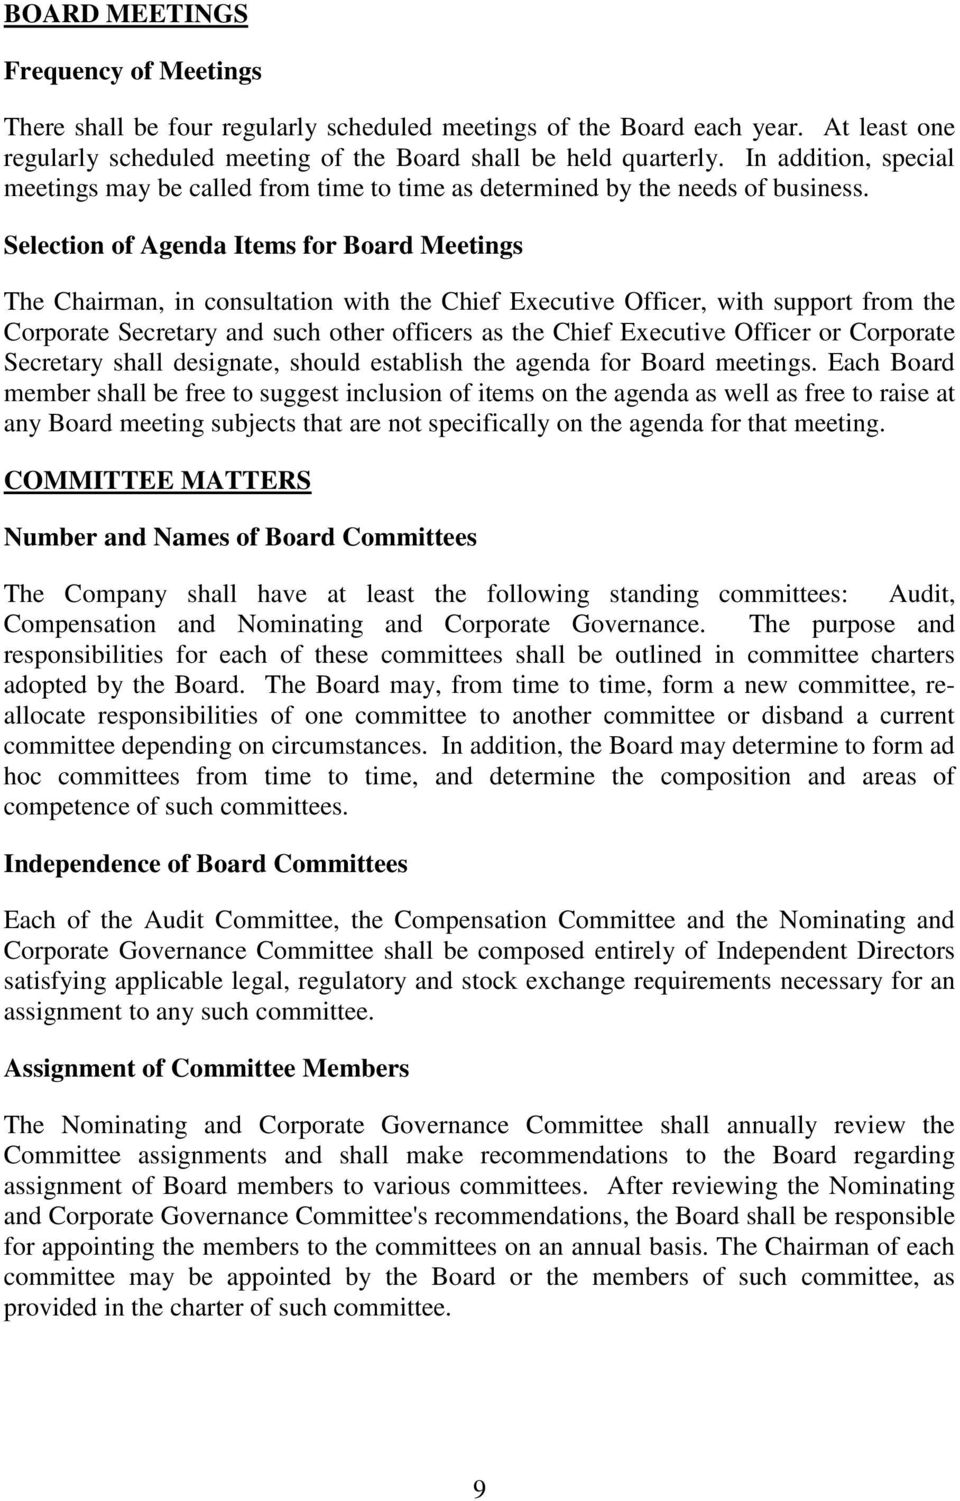 Selection of Agenda Items for Board Meetings The Chairman, in consultation with the Chief Executive Officer, with support from the Corporate Secretary and such other officers as the Chief Executive